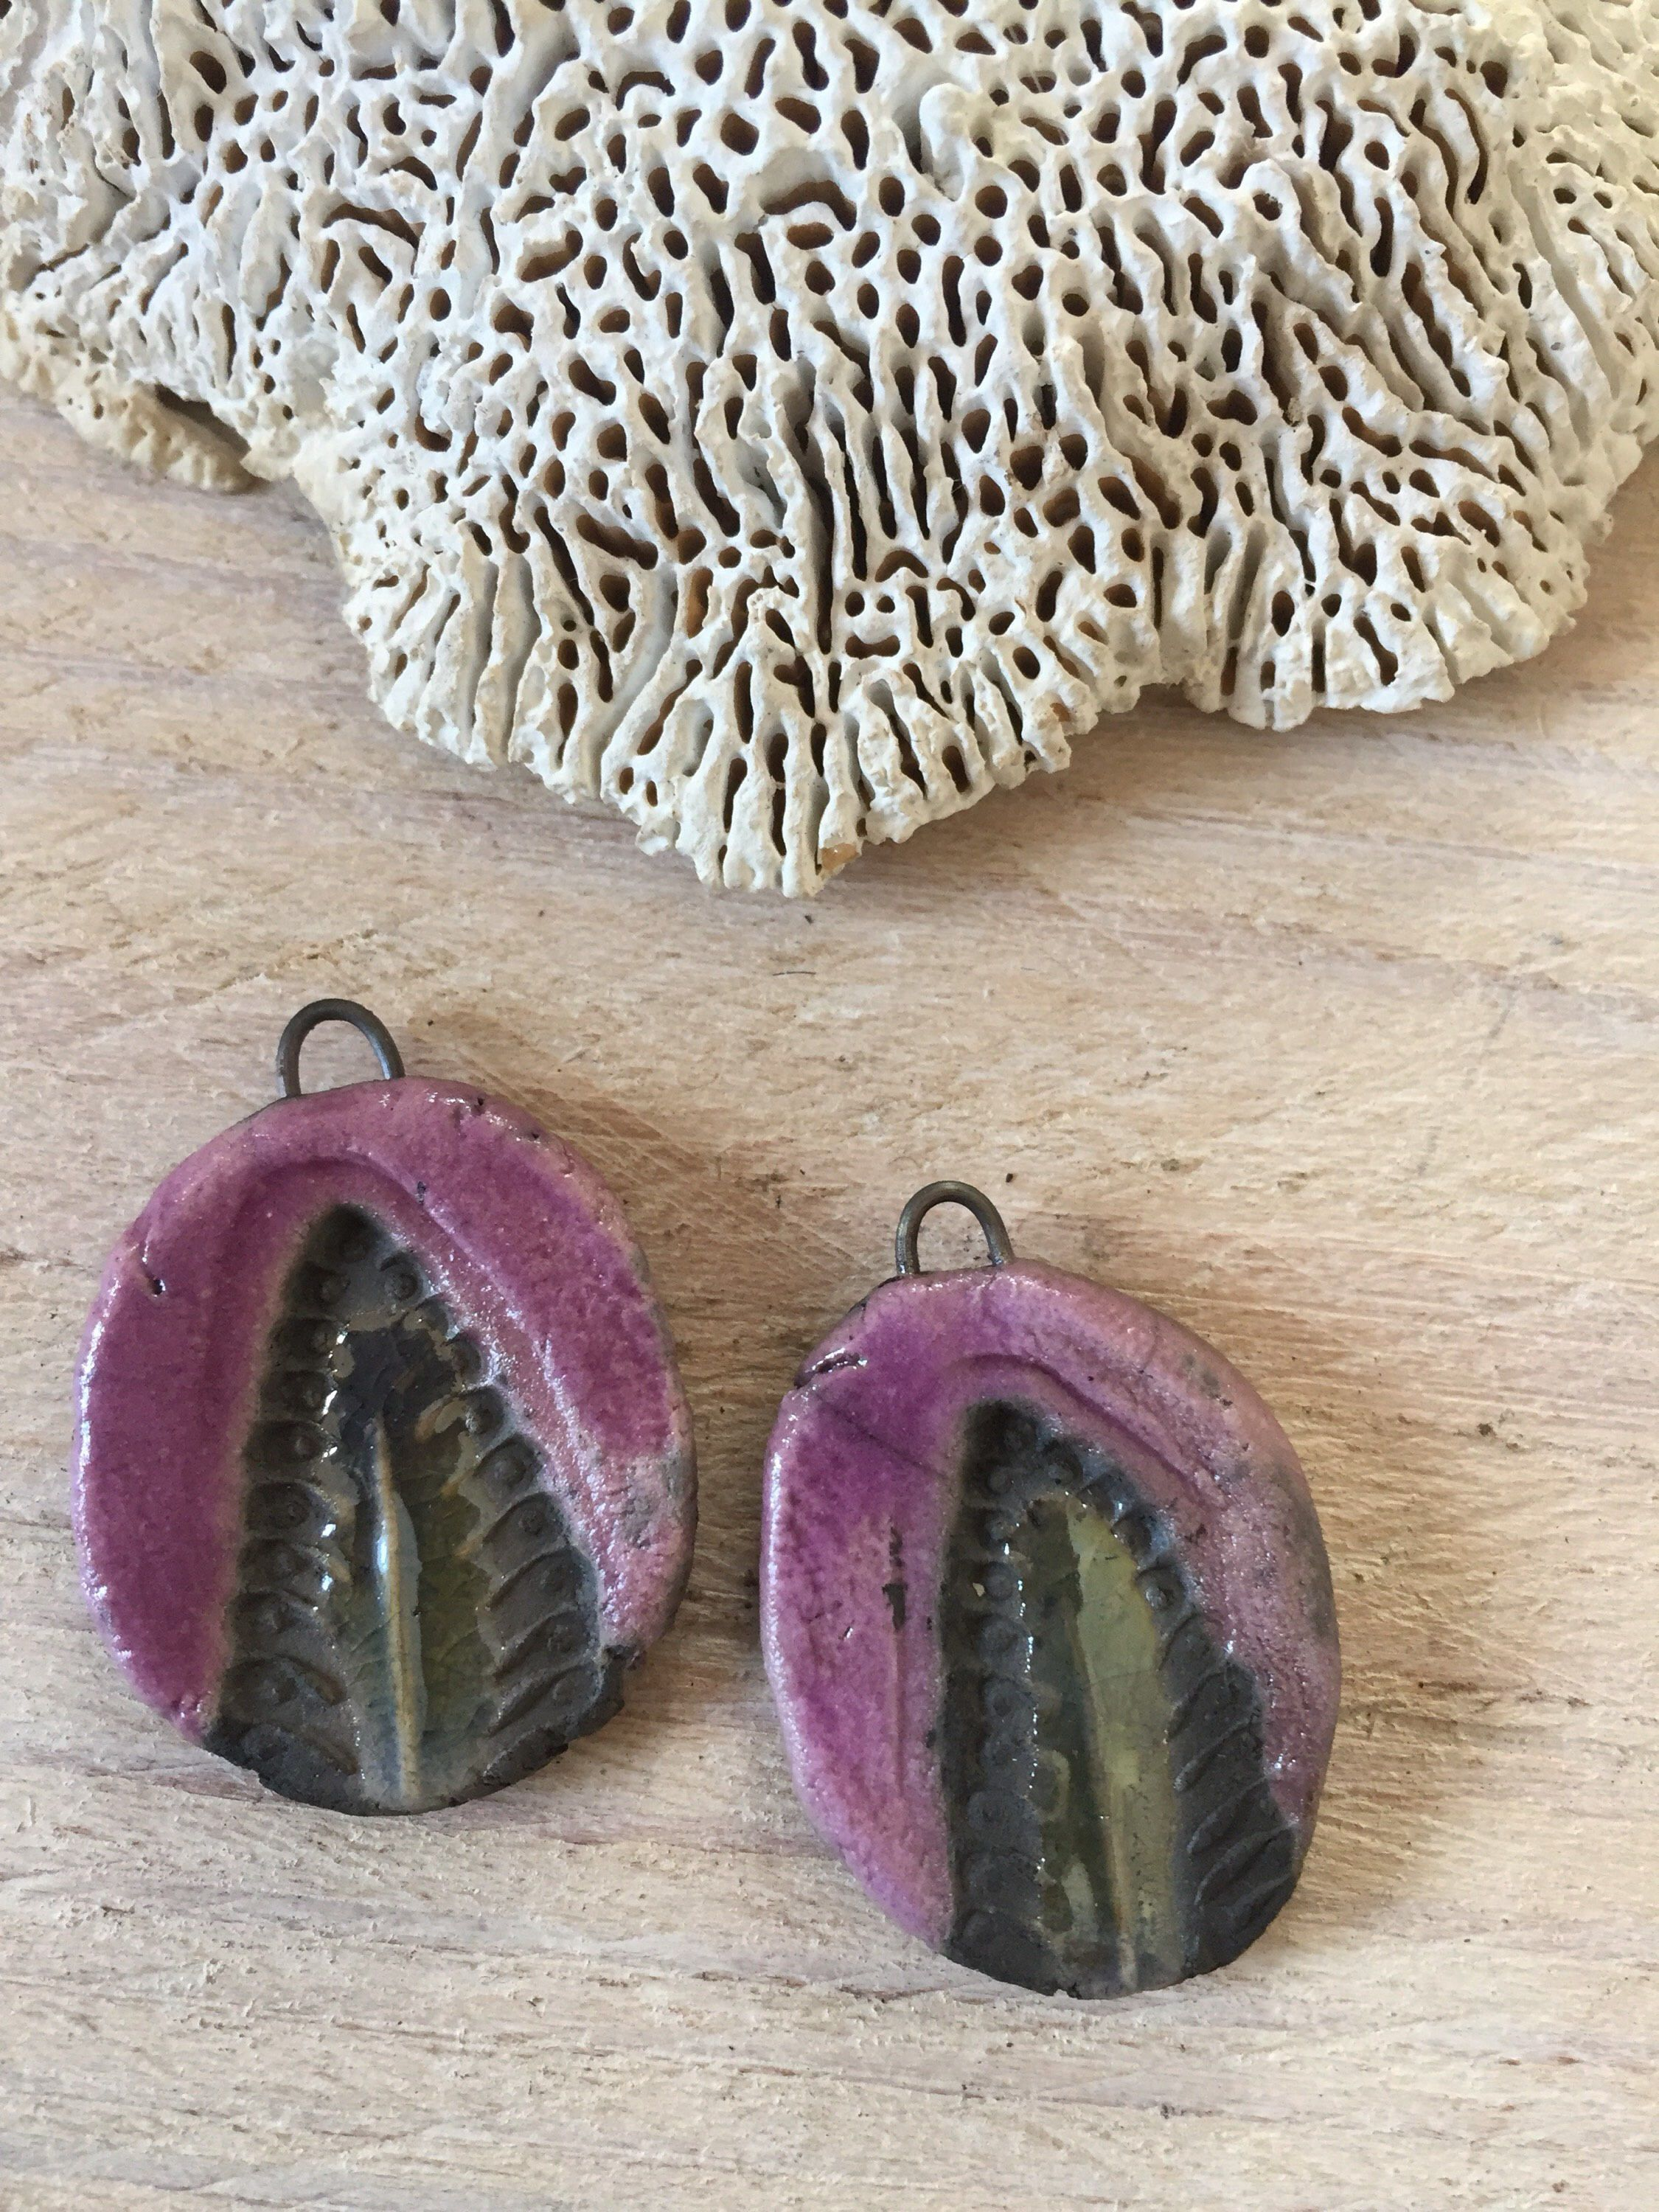 Set of 2 ceramic raku pendants by histoiredapprets on etsy https set of 2 ceramic raku pendants by histoiredapprets on etsy https aloadofball Choice Image